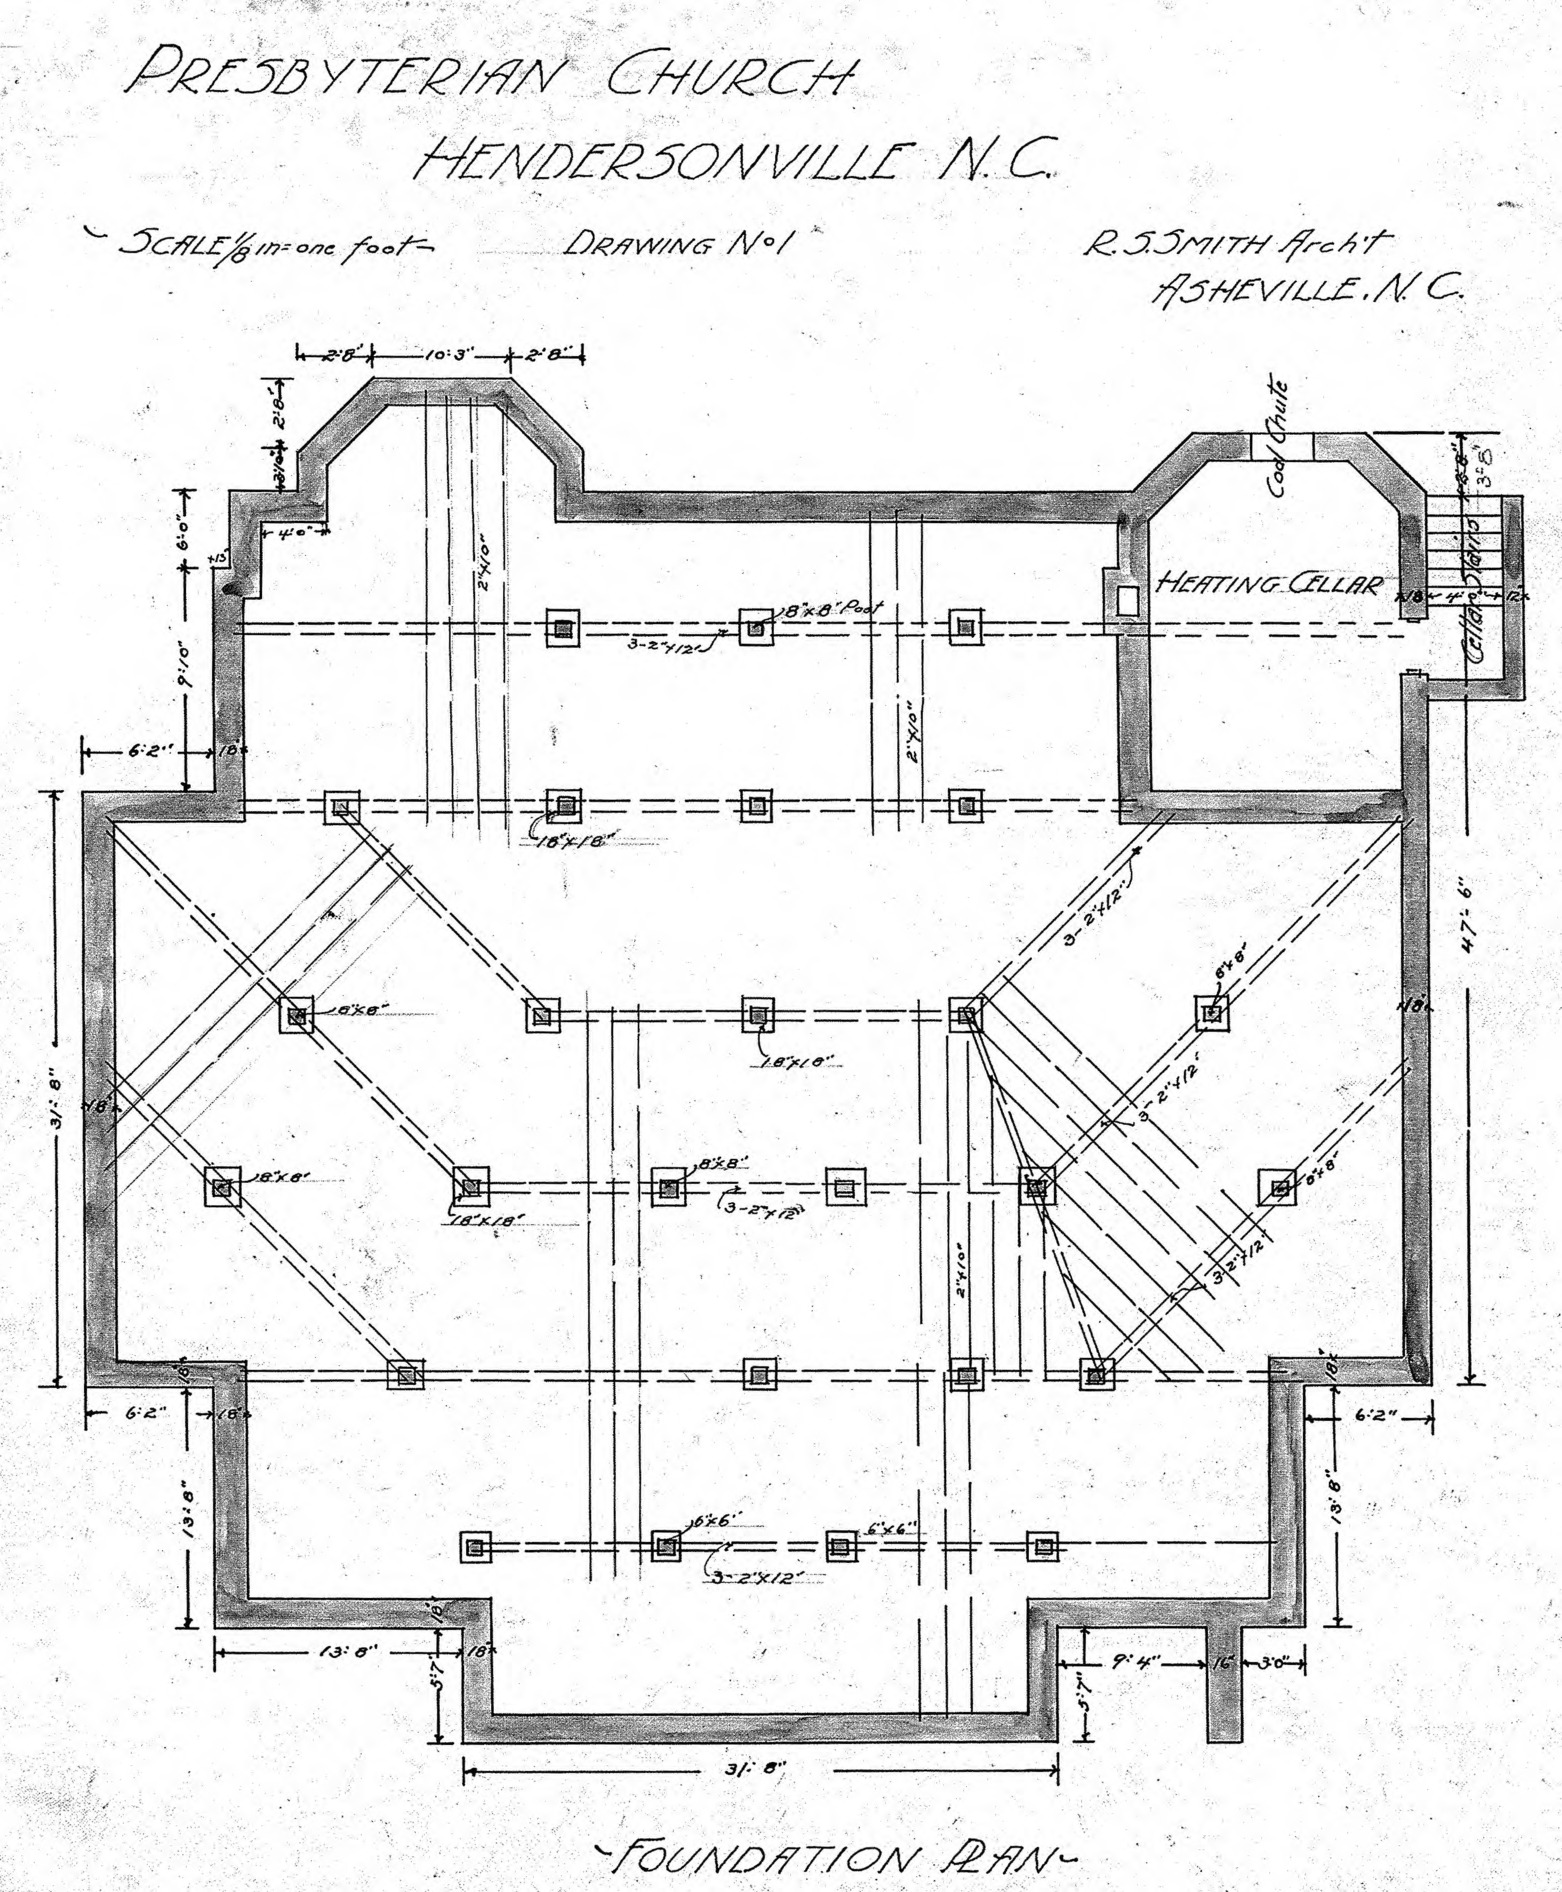 Presbyterian church foundation plan drawing no 1 for Foundation plan drawing